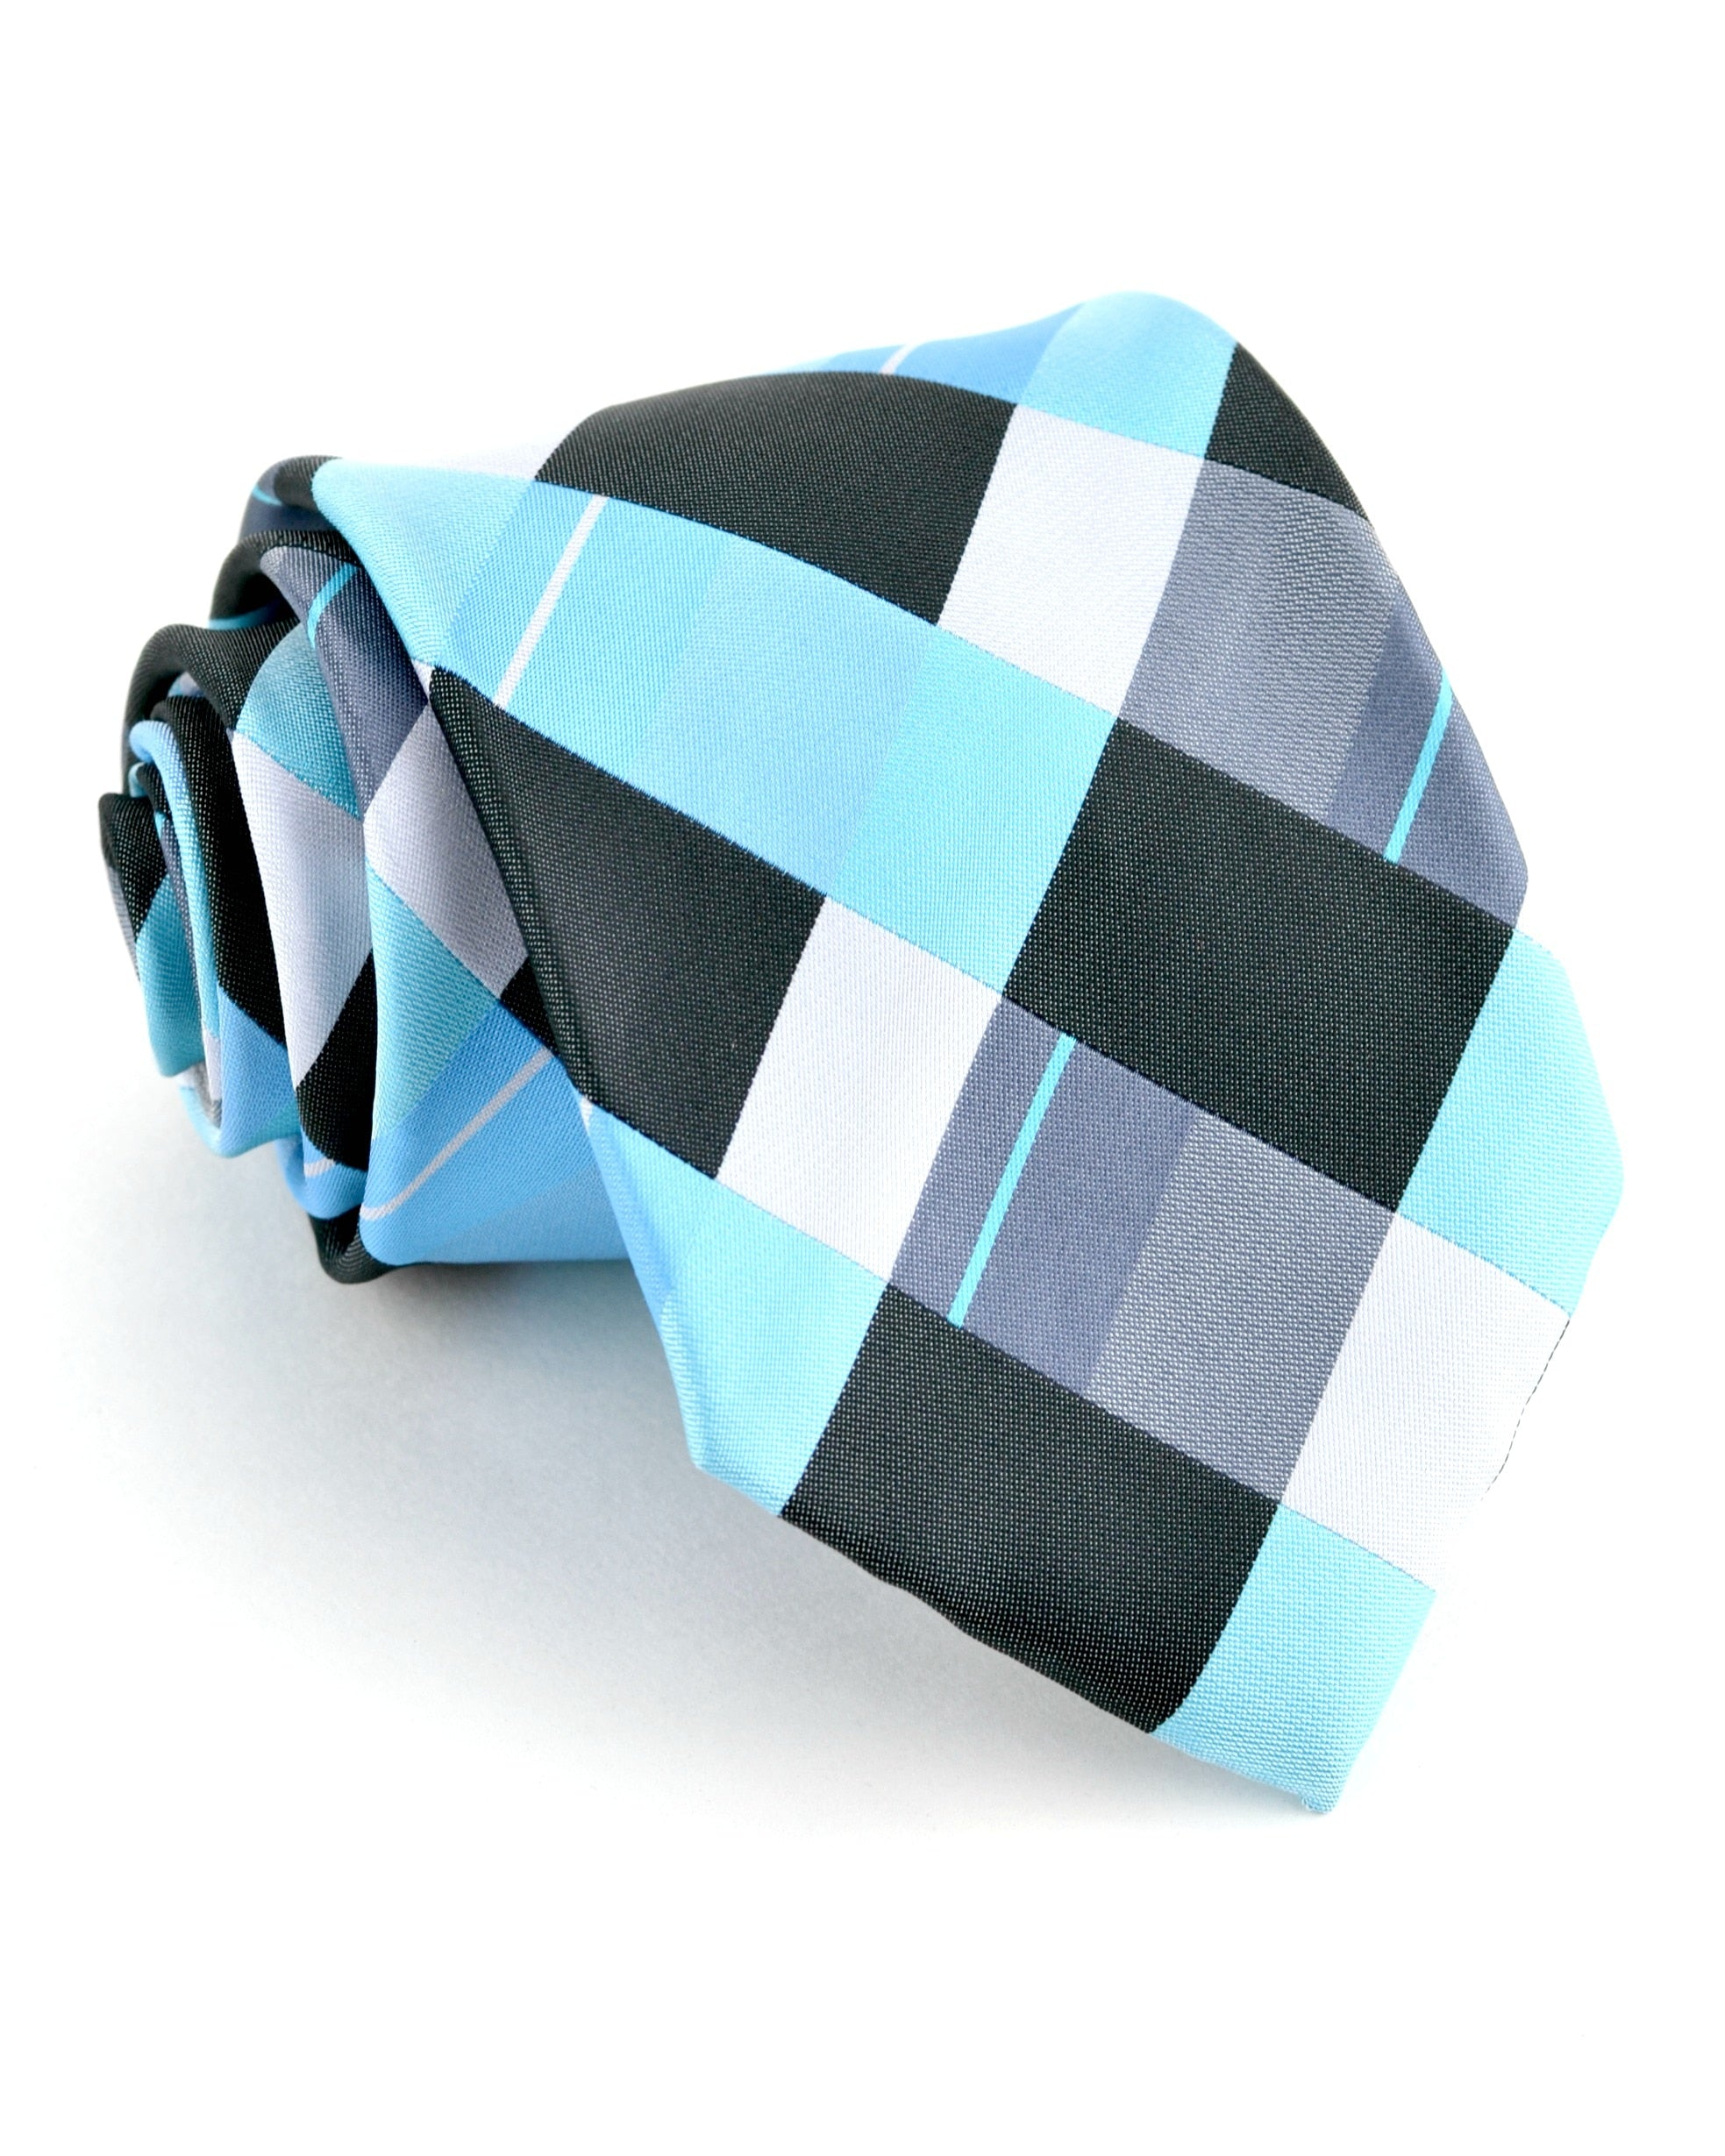 aqua-and-charcoal-squares-dad-tie.jpg